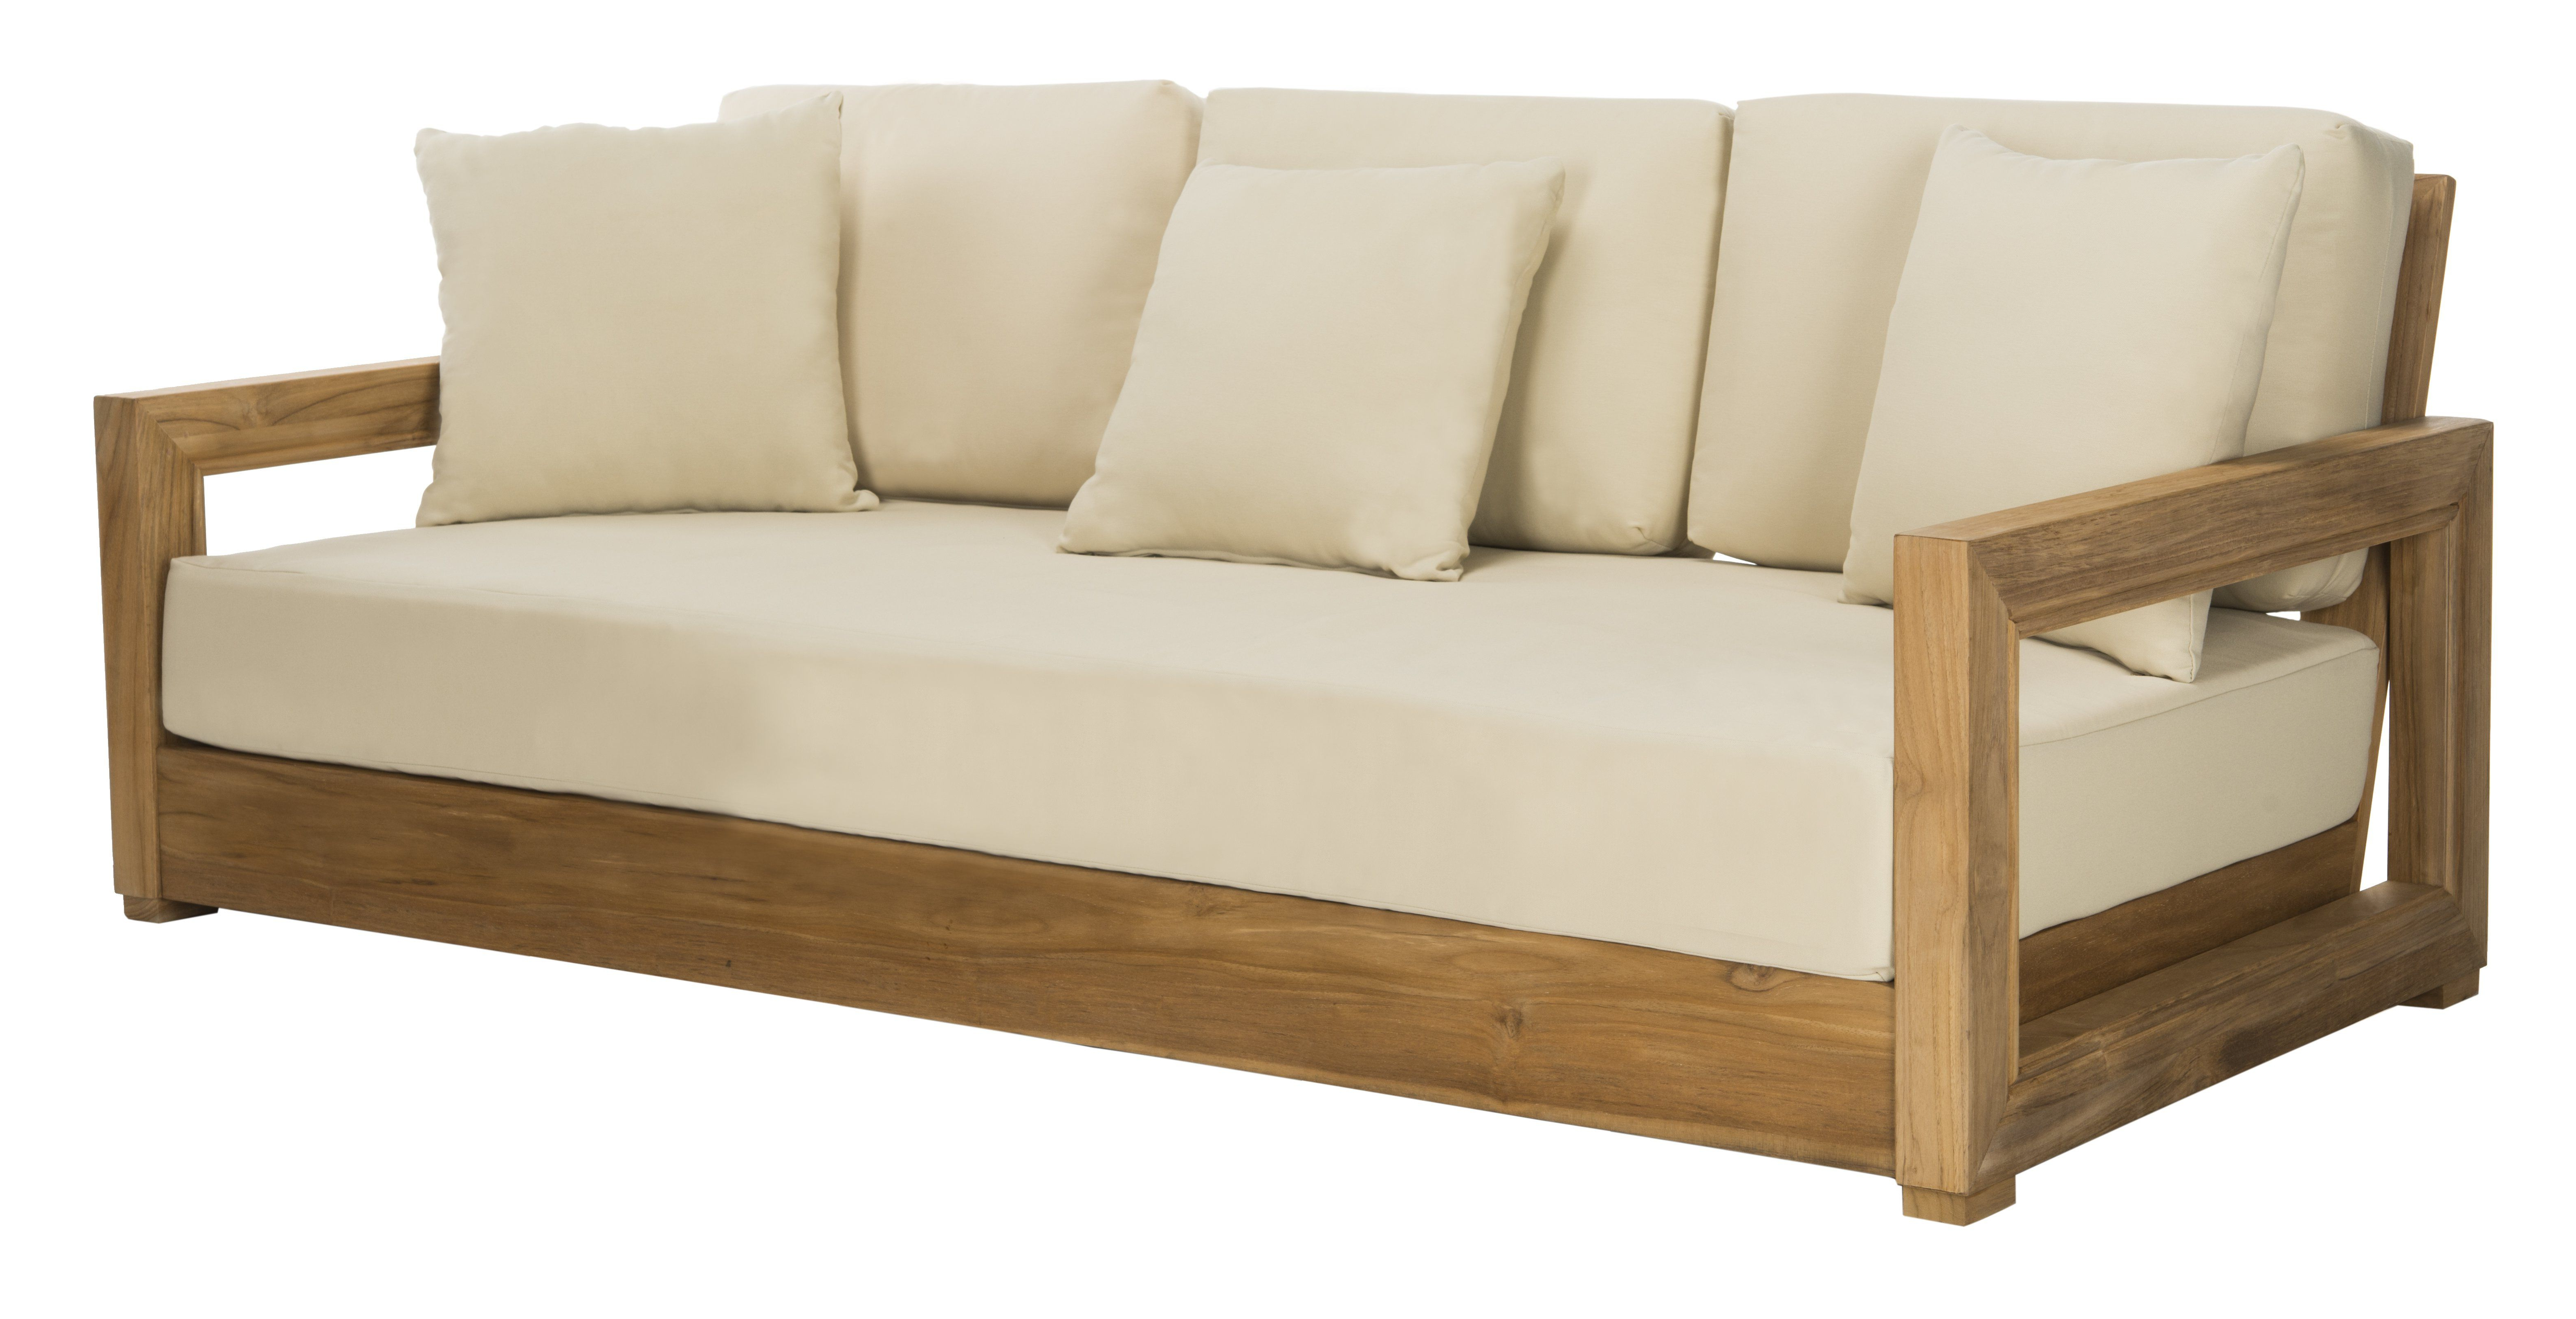 Lakeland Patio Sofa With Cushions (View 9 of 20)